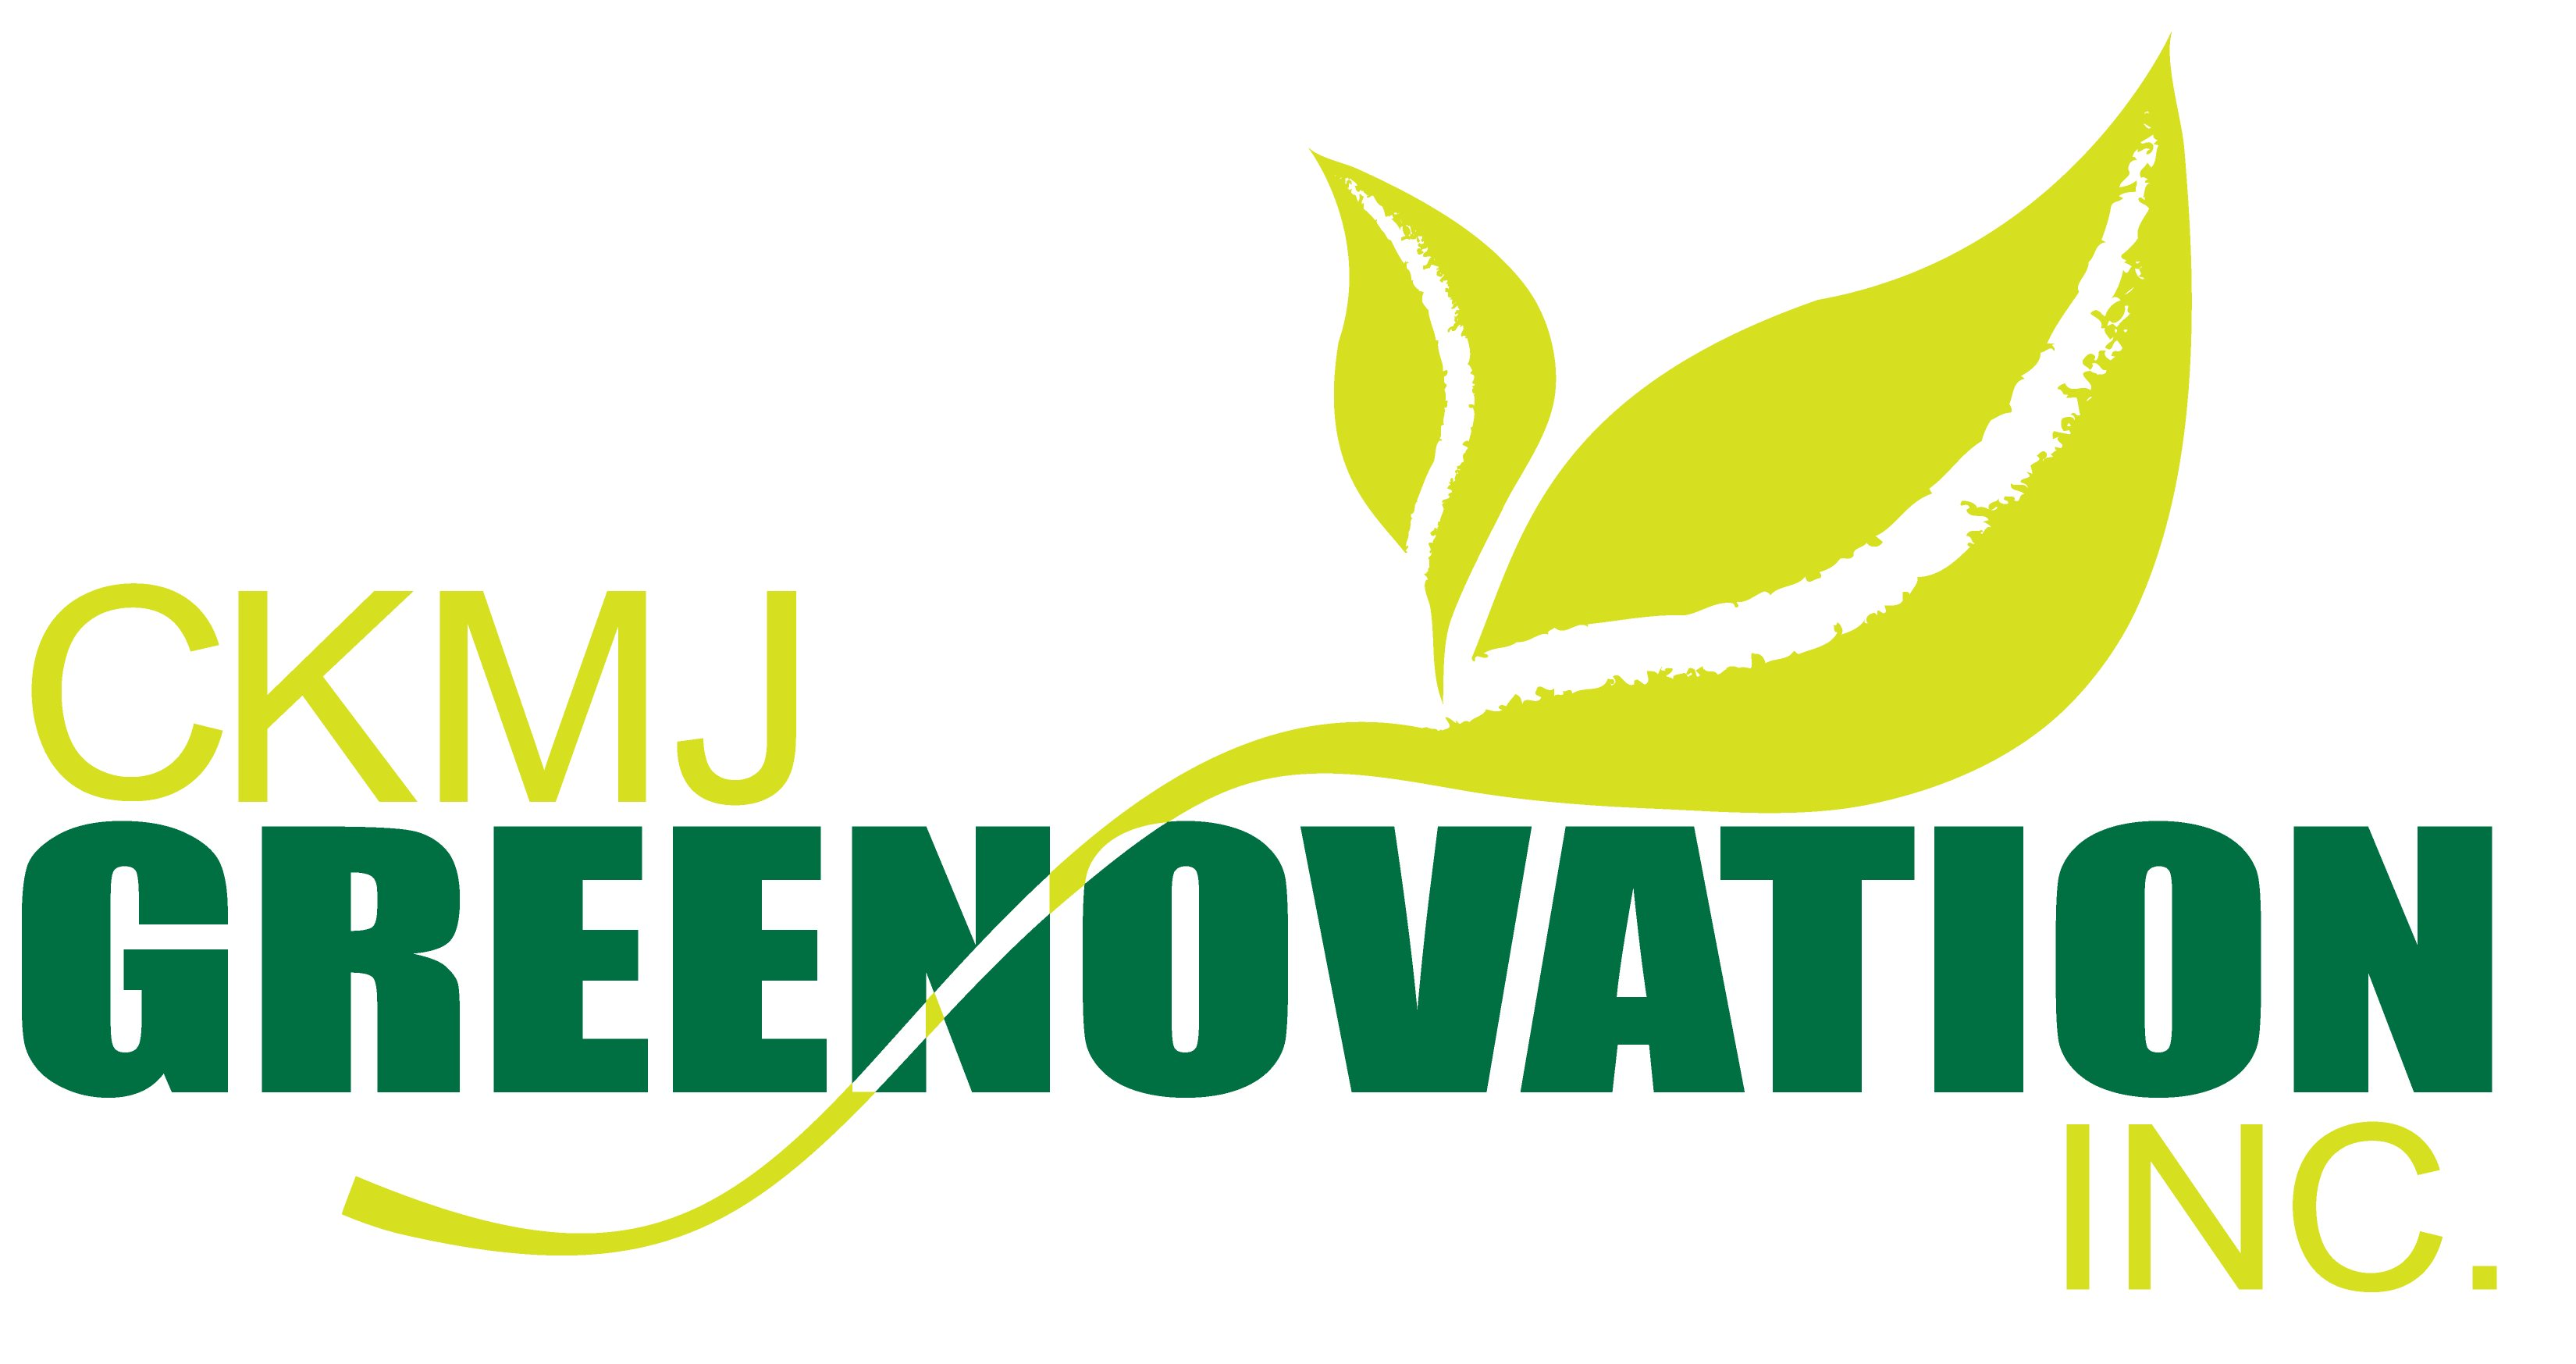 CKMJ Greenovation Inc